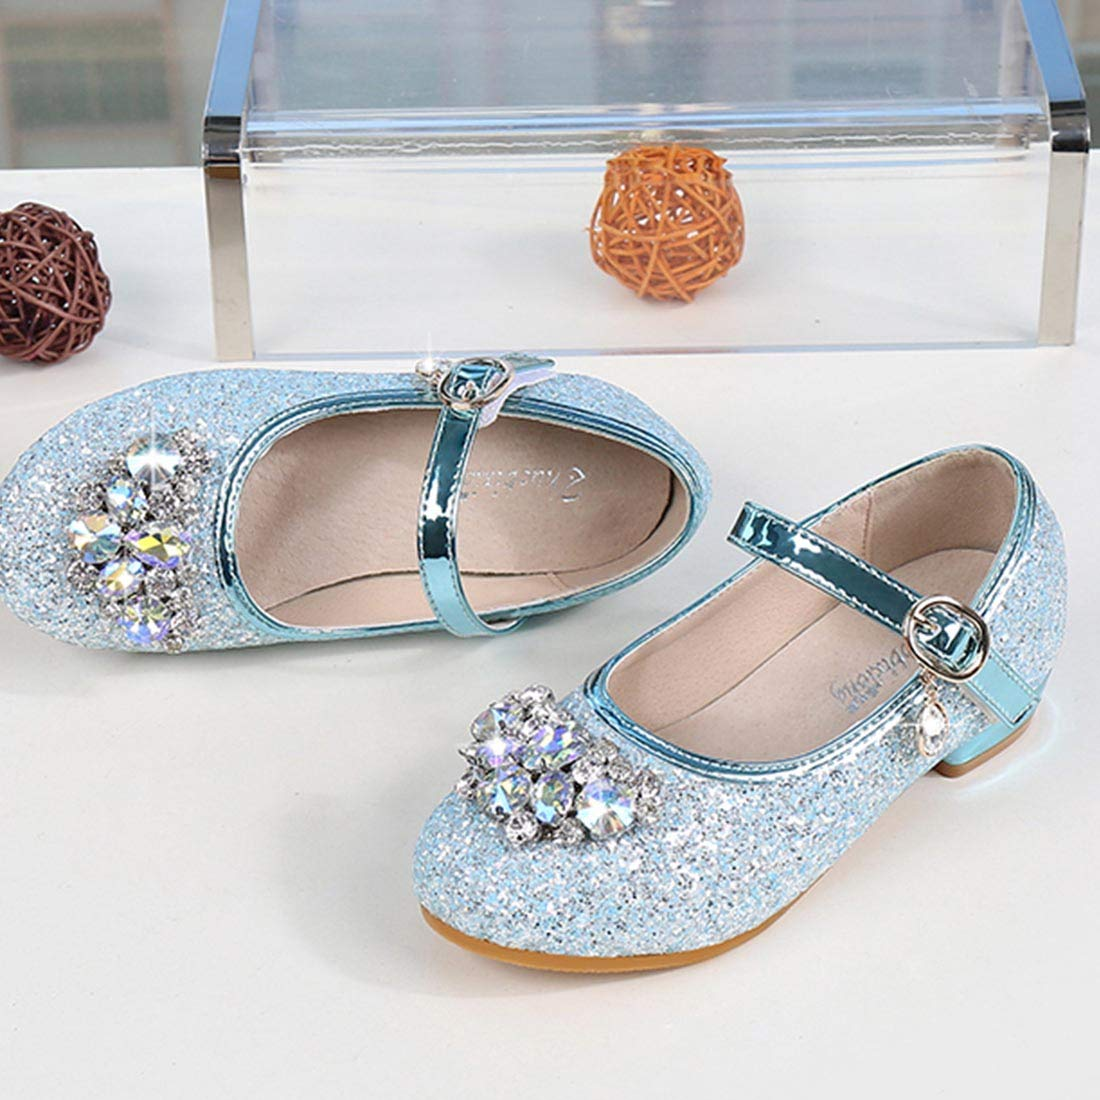 JTENGYAO Little Girls Shoes Sparkle Crystal Jane Mary Low Heels Bridesmaid Wedding Princess Party Dress Shoes